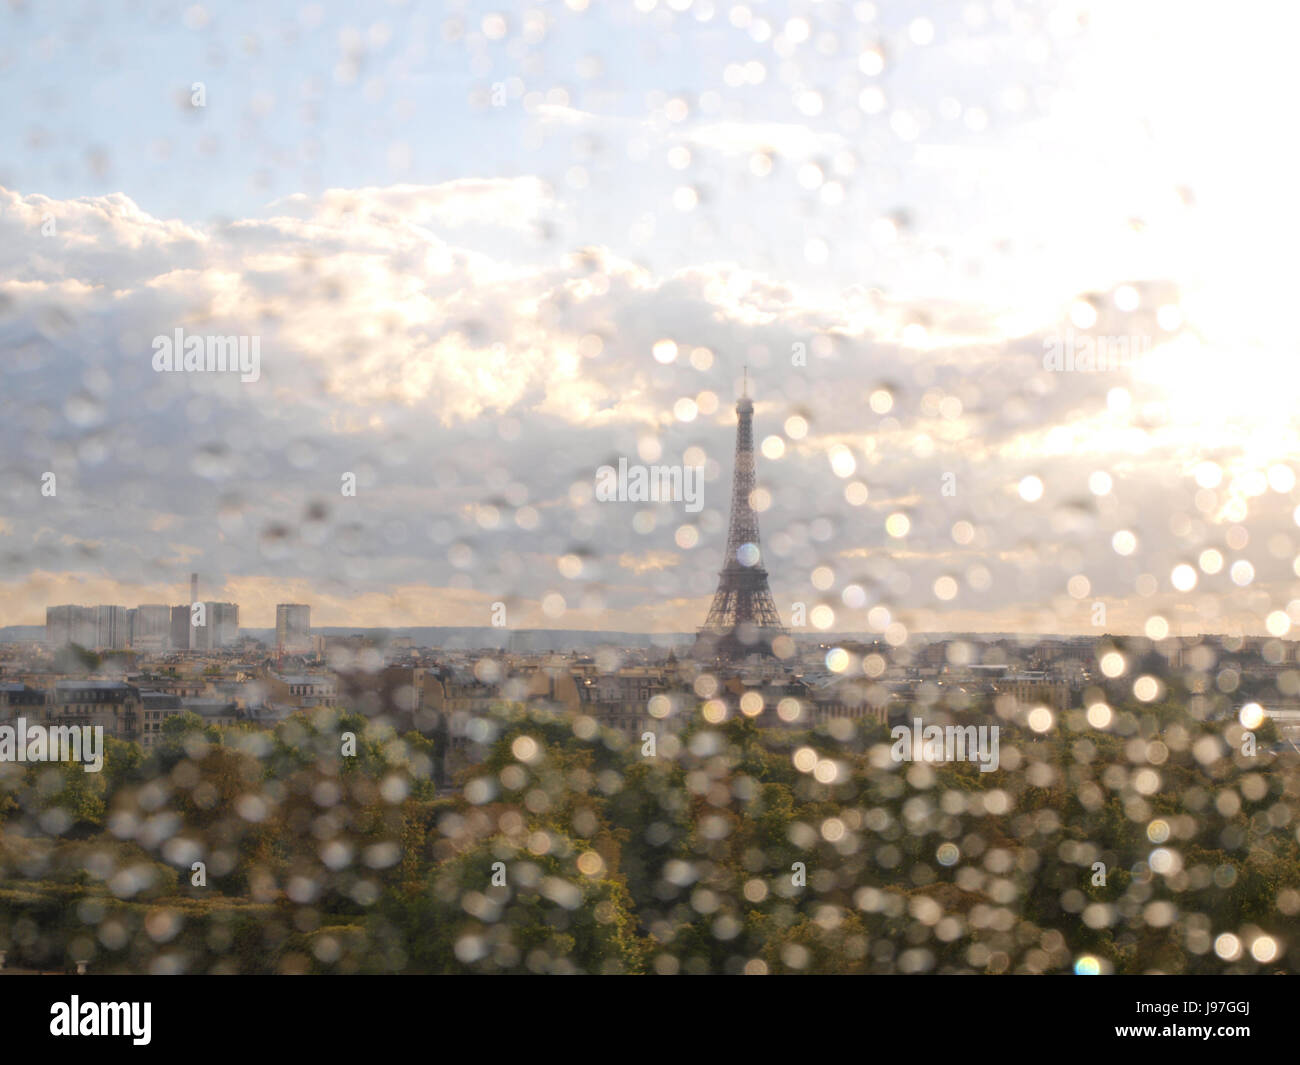 Raindrops on the window, and the Eiffel Tower in Paris, France, mainland Europe. Paris weather can be unpredictable. - Stock Image